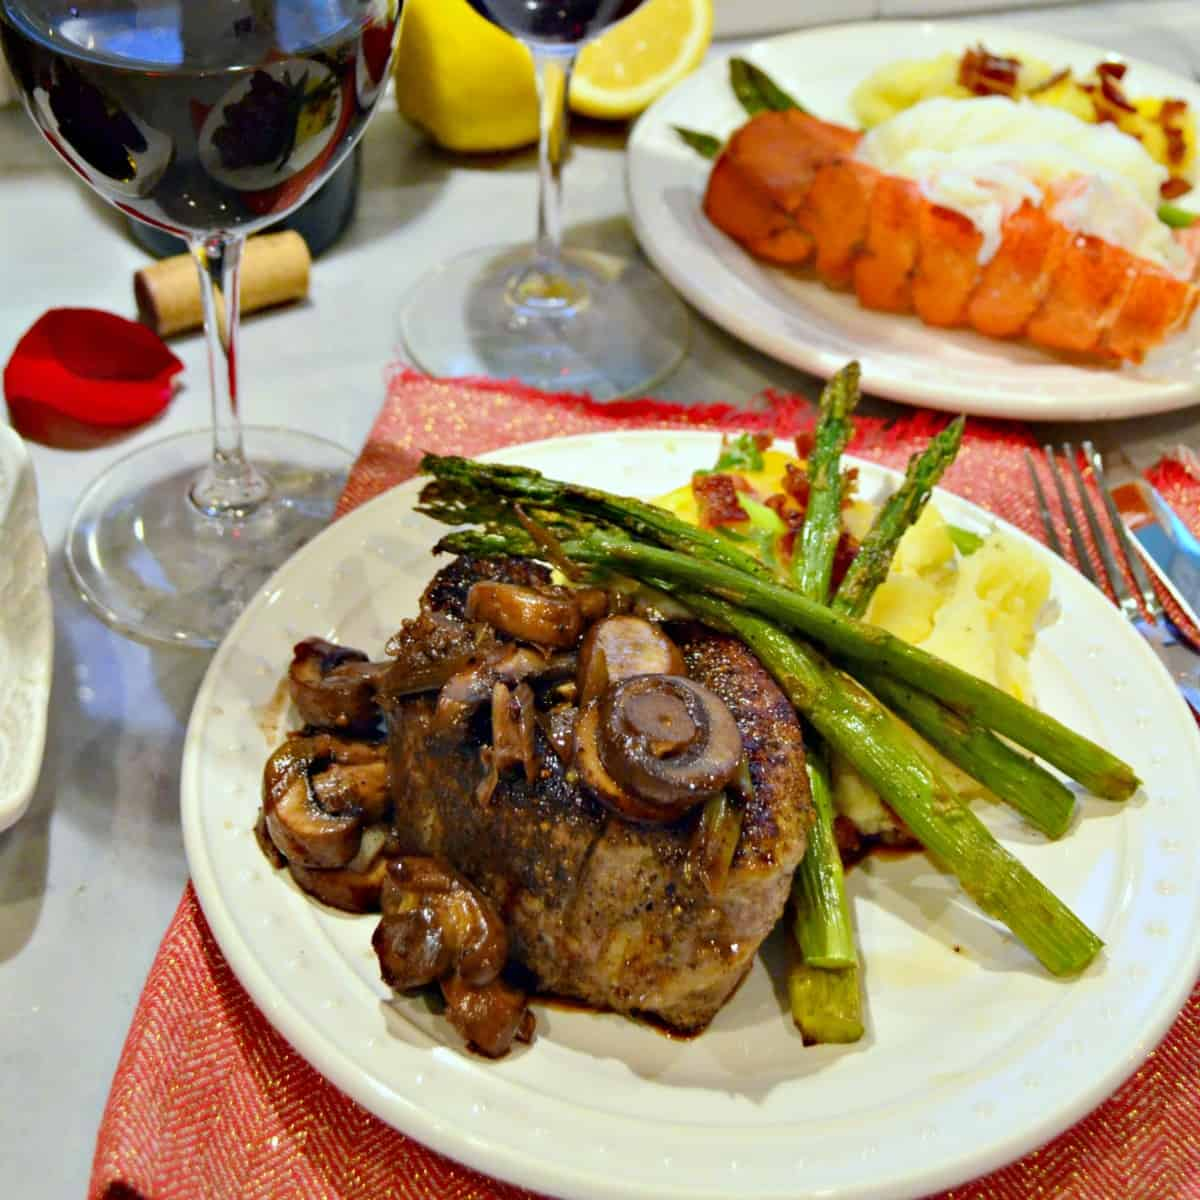 Irresistible Valentine's Meal for Two: Filet Mignon, Lobster Tail, Sides, Dessert & Roses ...